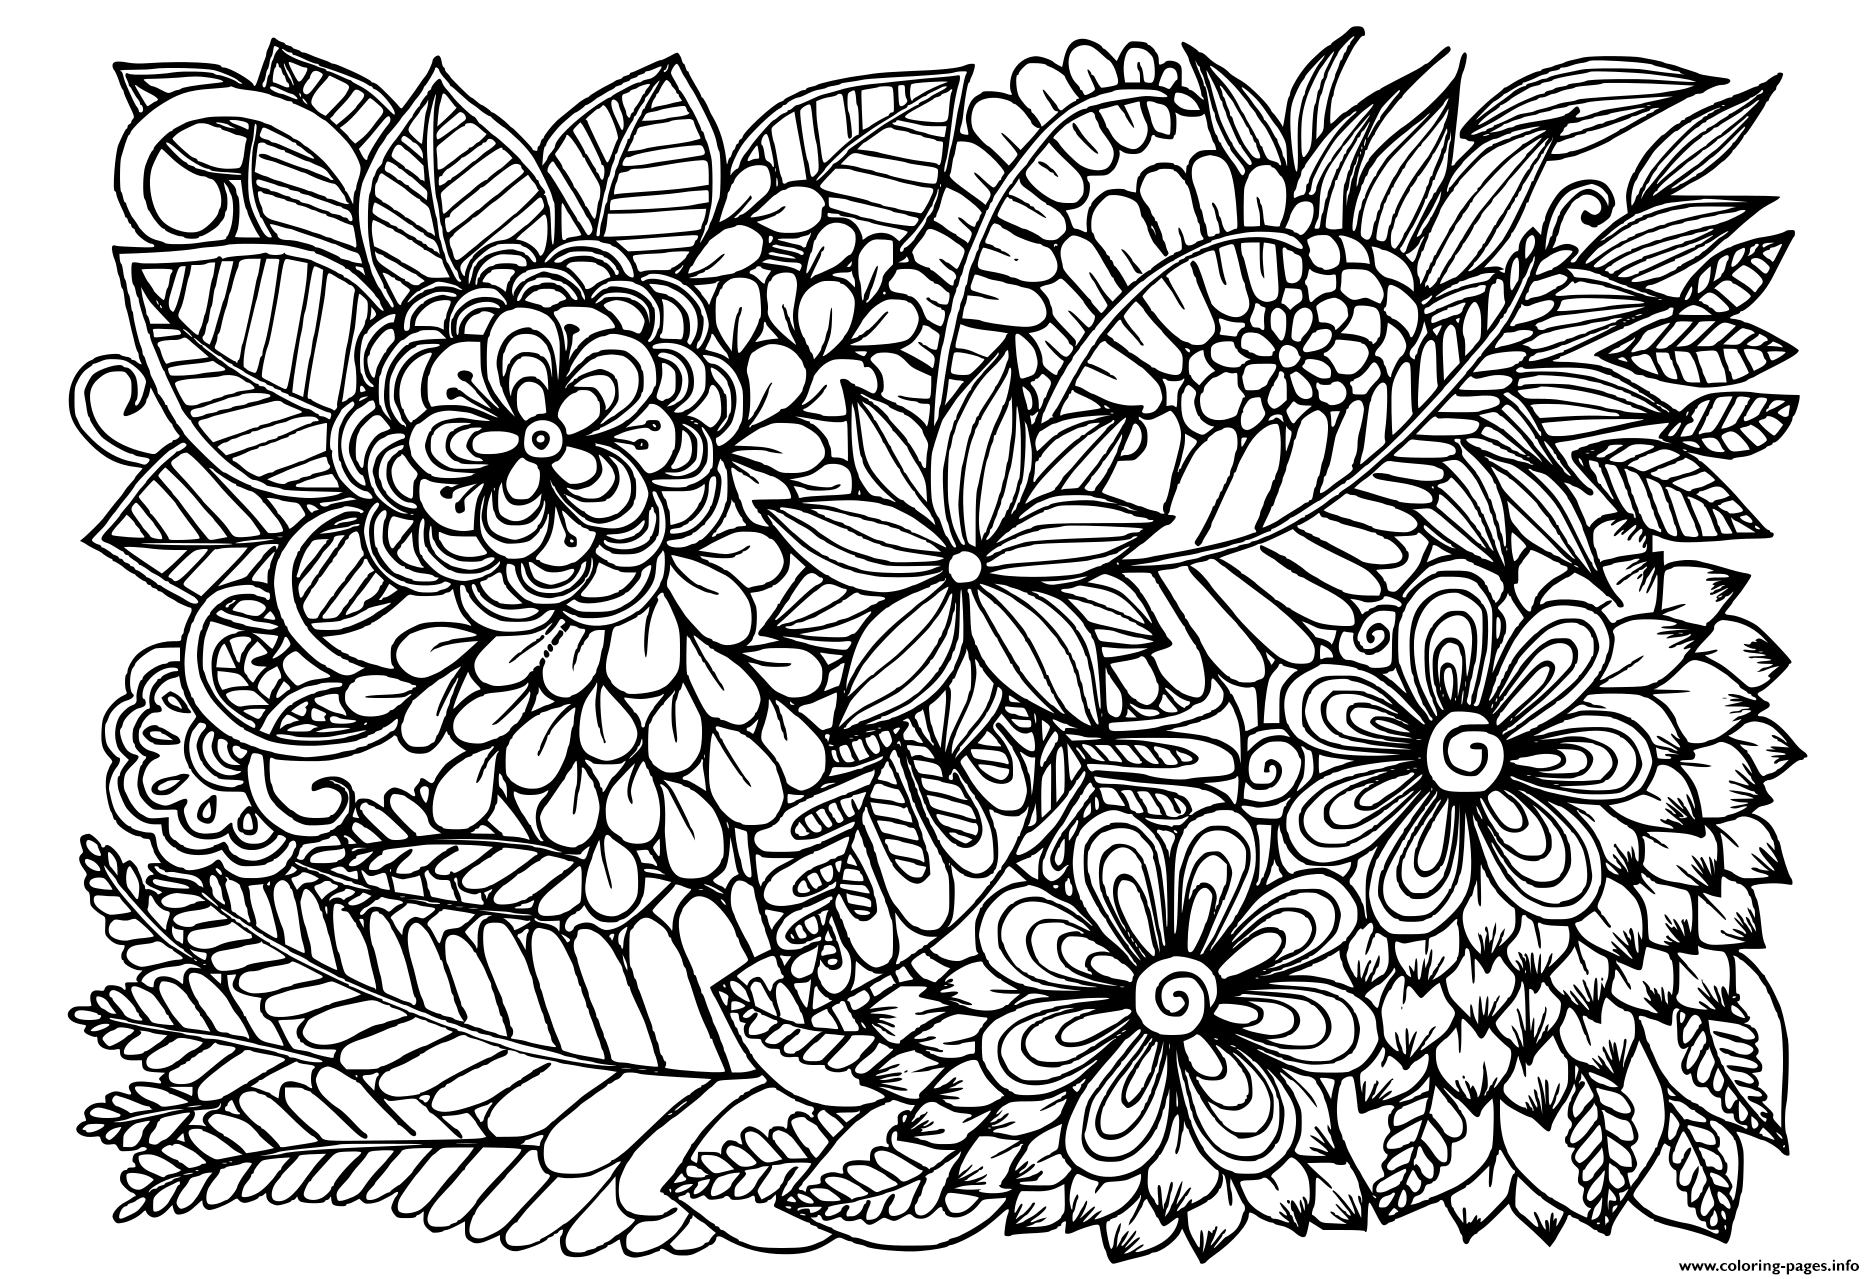 Doodle Flowers In Black And White Floral Pattern Coloring Pages